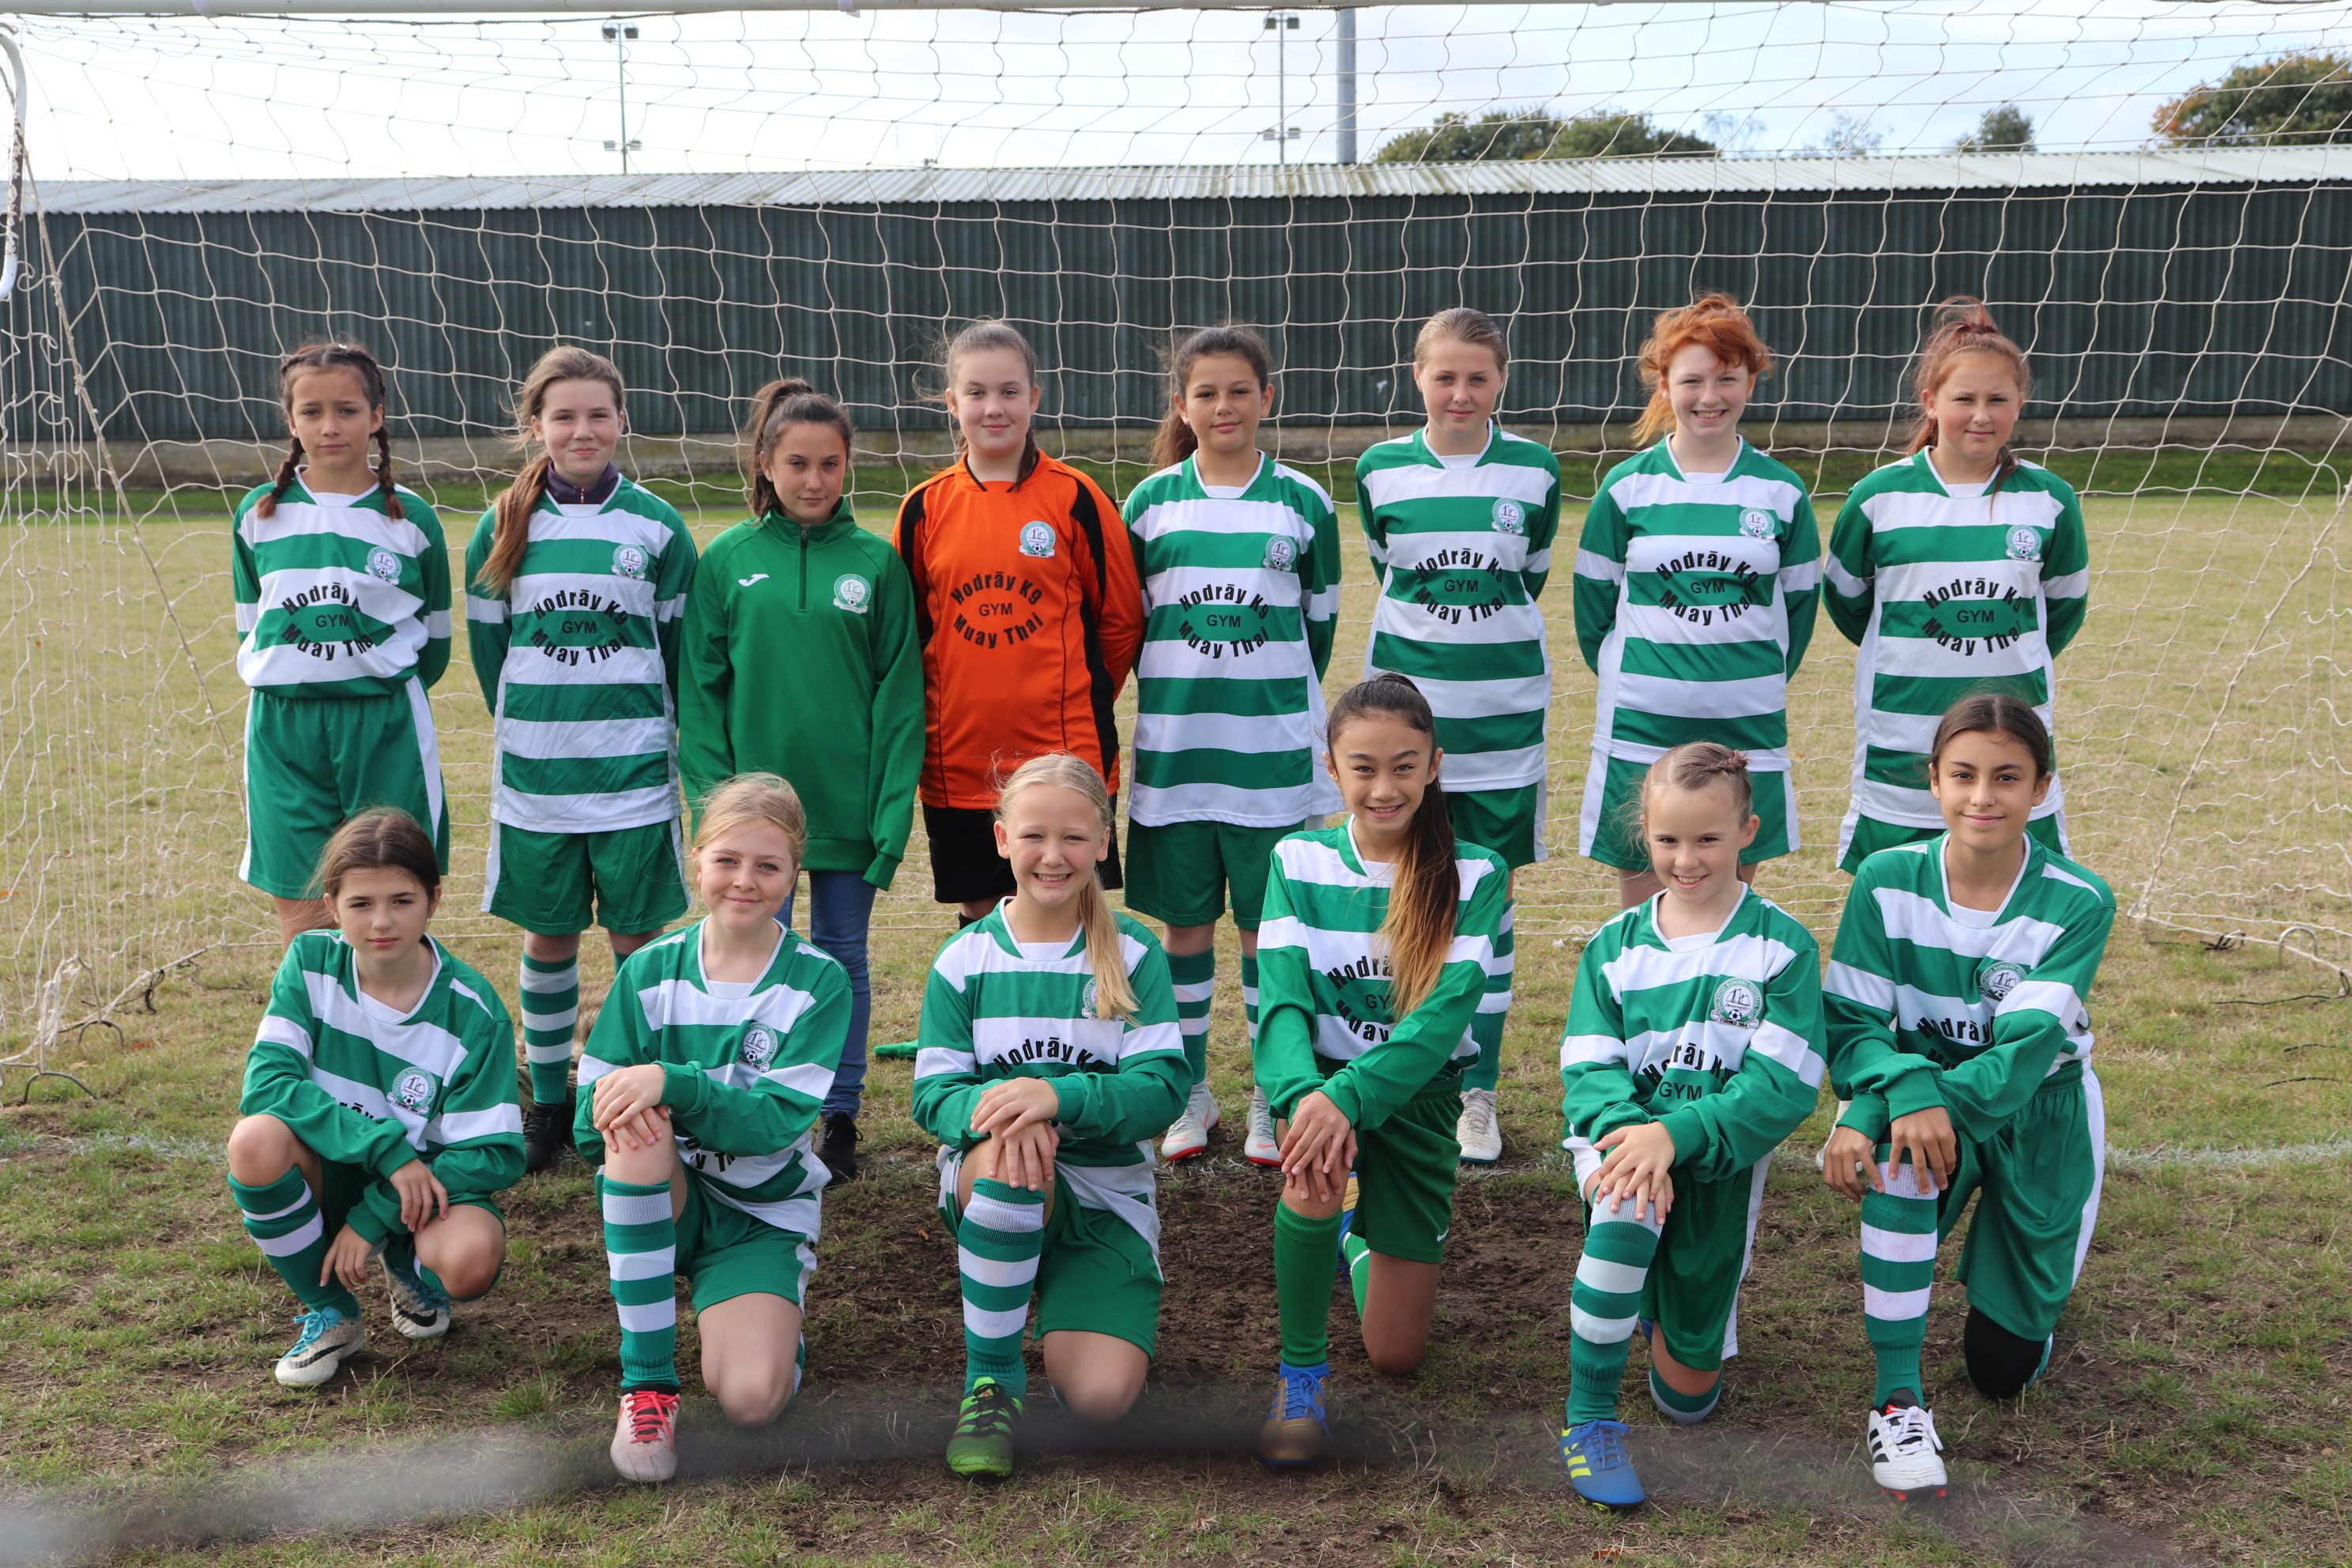 U13 Girls Falcon team pic